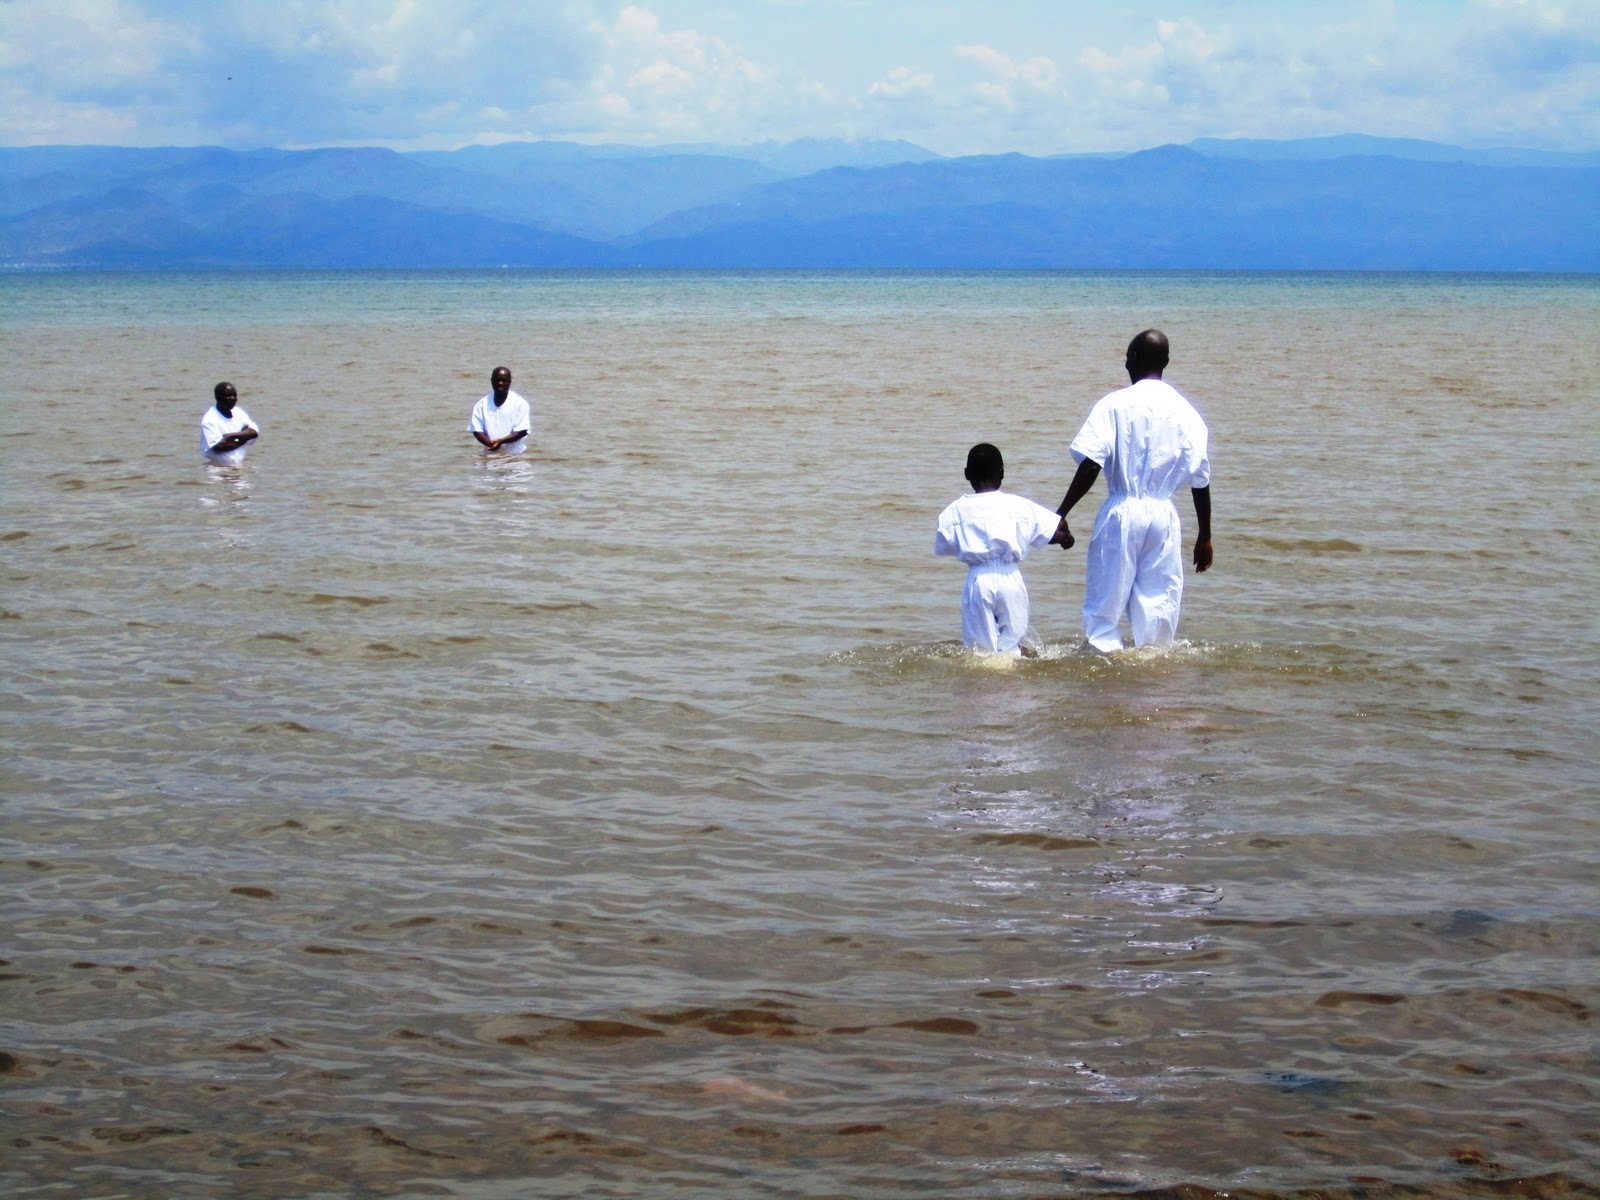 On Oct. 23, just a few weeks after the LDS Church's branch in Uvira, Democratic Republic of the Congo, Africa, was established, the first baptismal service in the actual city of Uvira was in the nearby waters of Lake Tanganyika. The newly called branch president walks with his young son to perform to where the witnesses are for the baptism.